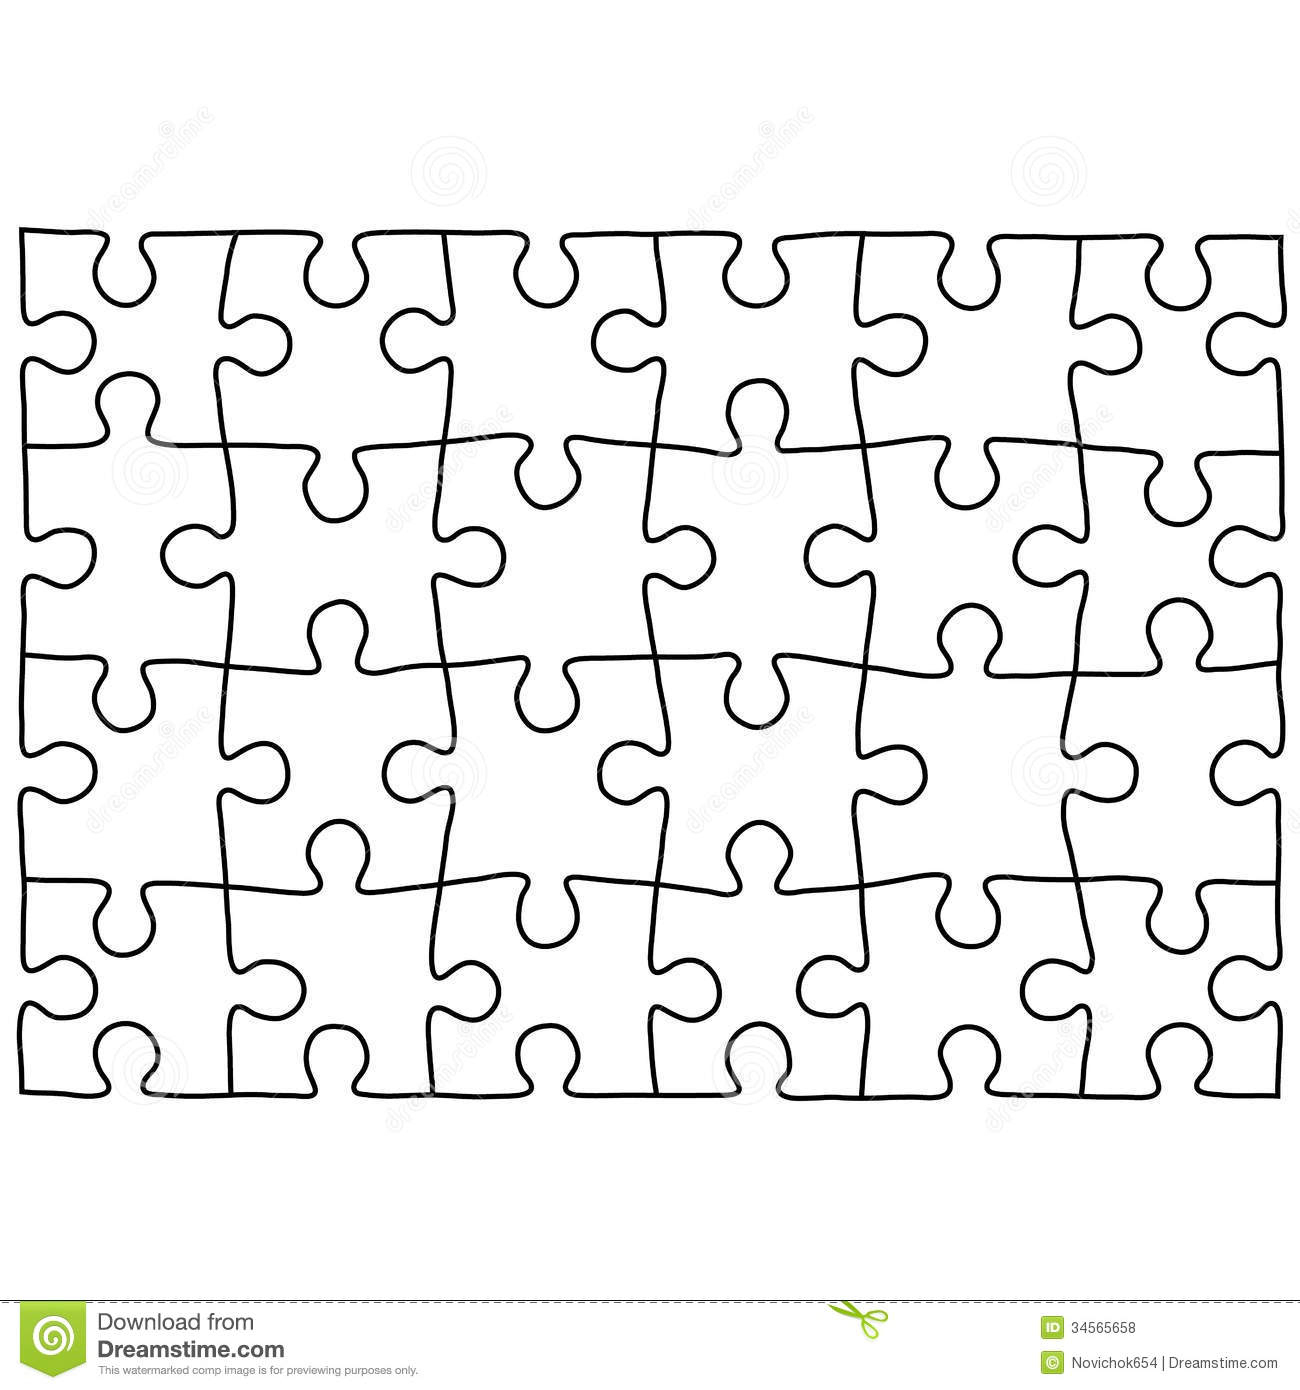 Free Puzzle Template, Download Free Clip Art, Free Clip Art On - Printable Jigsaw Puzzle Maker Download